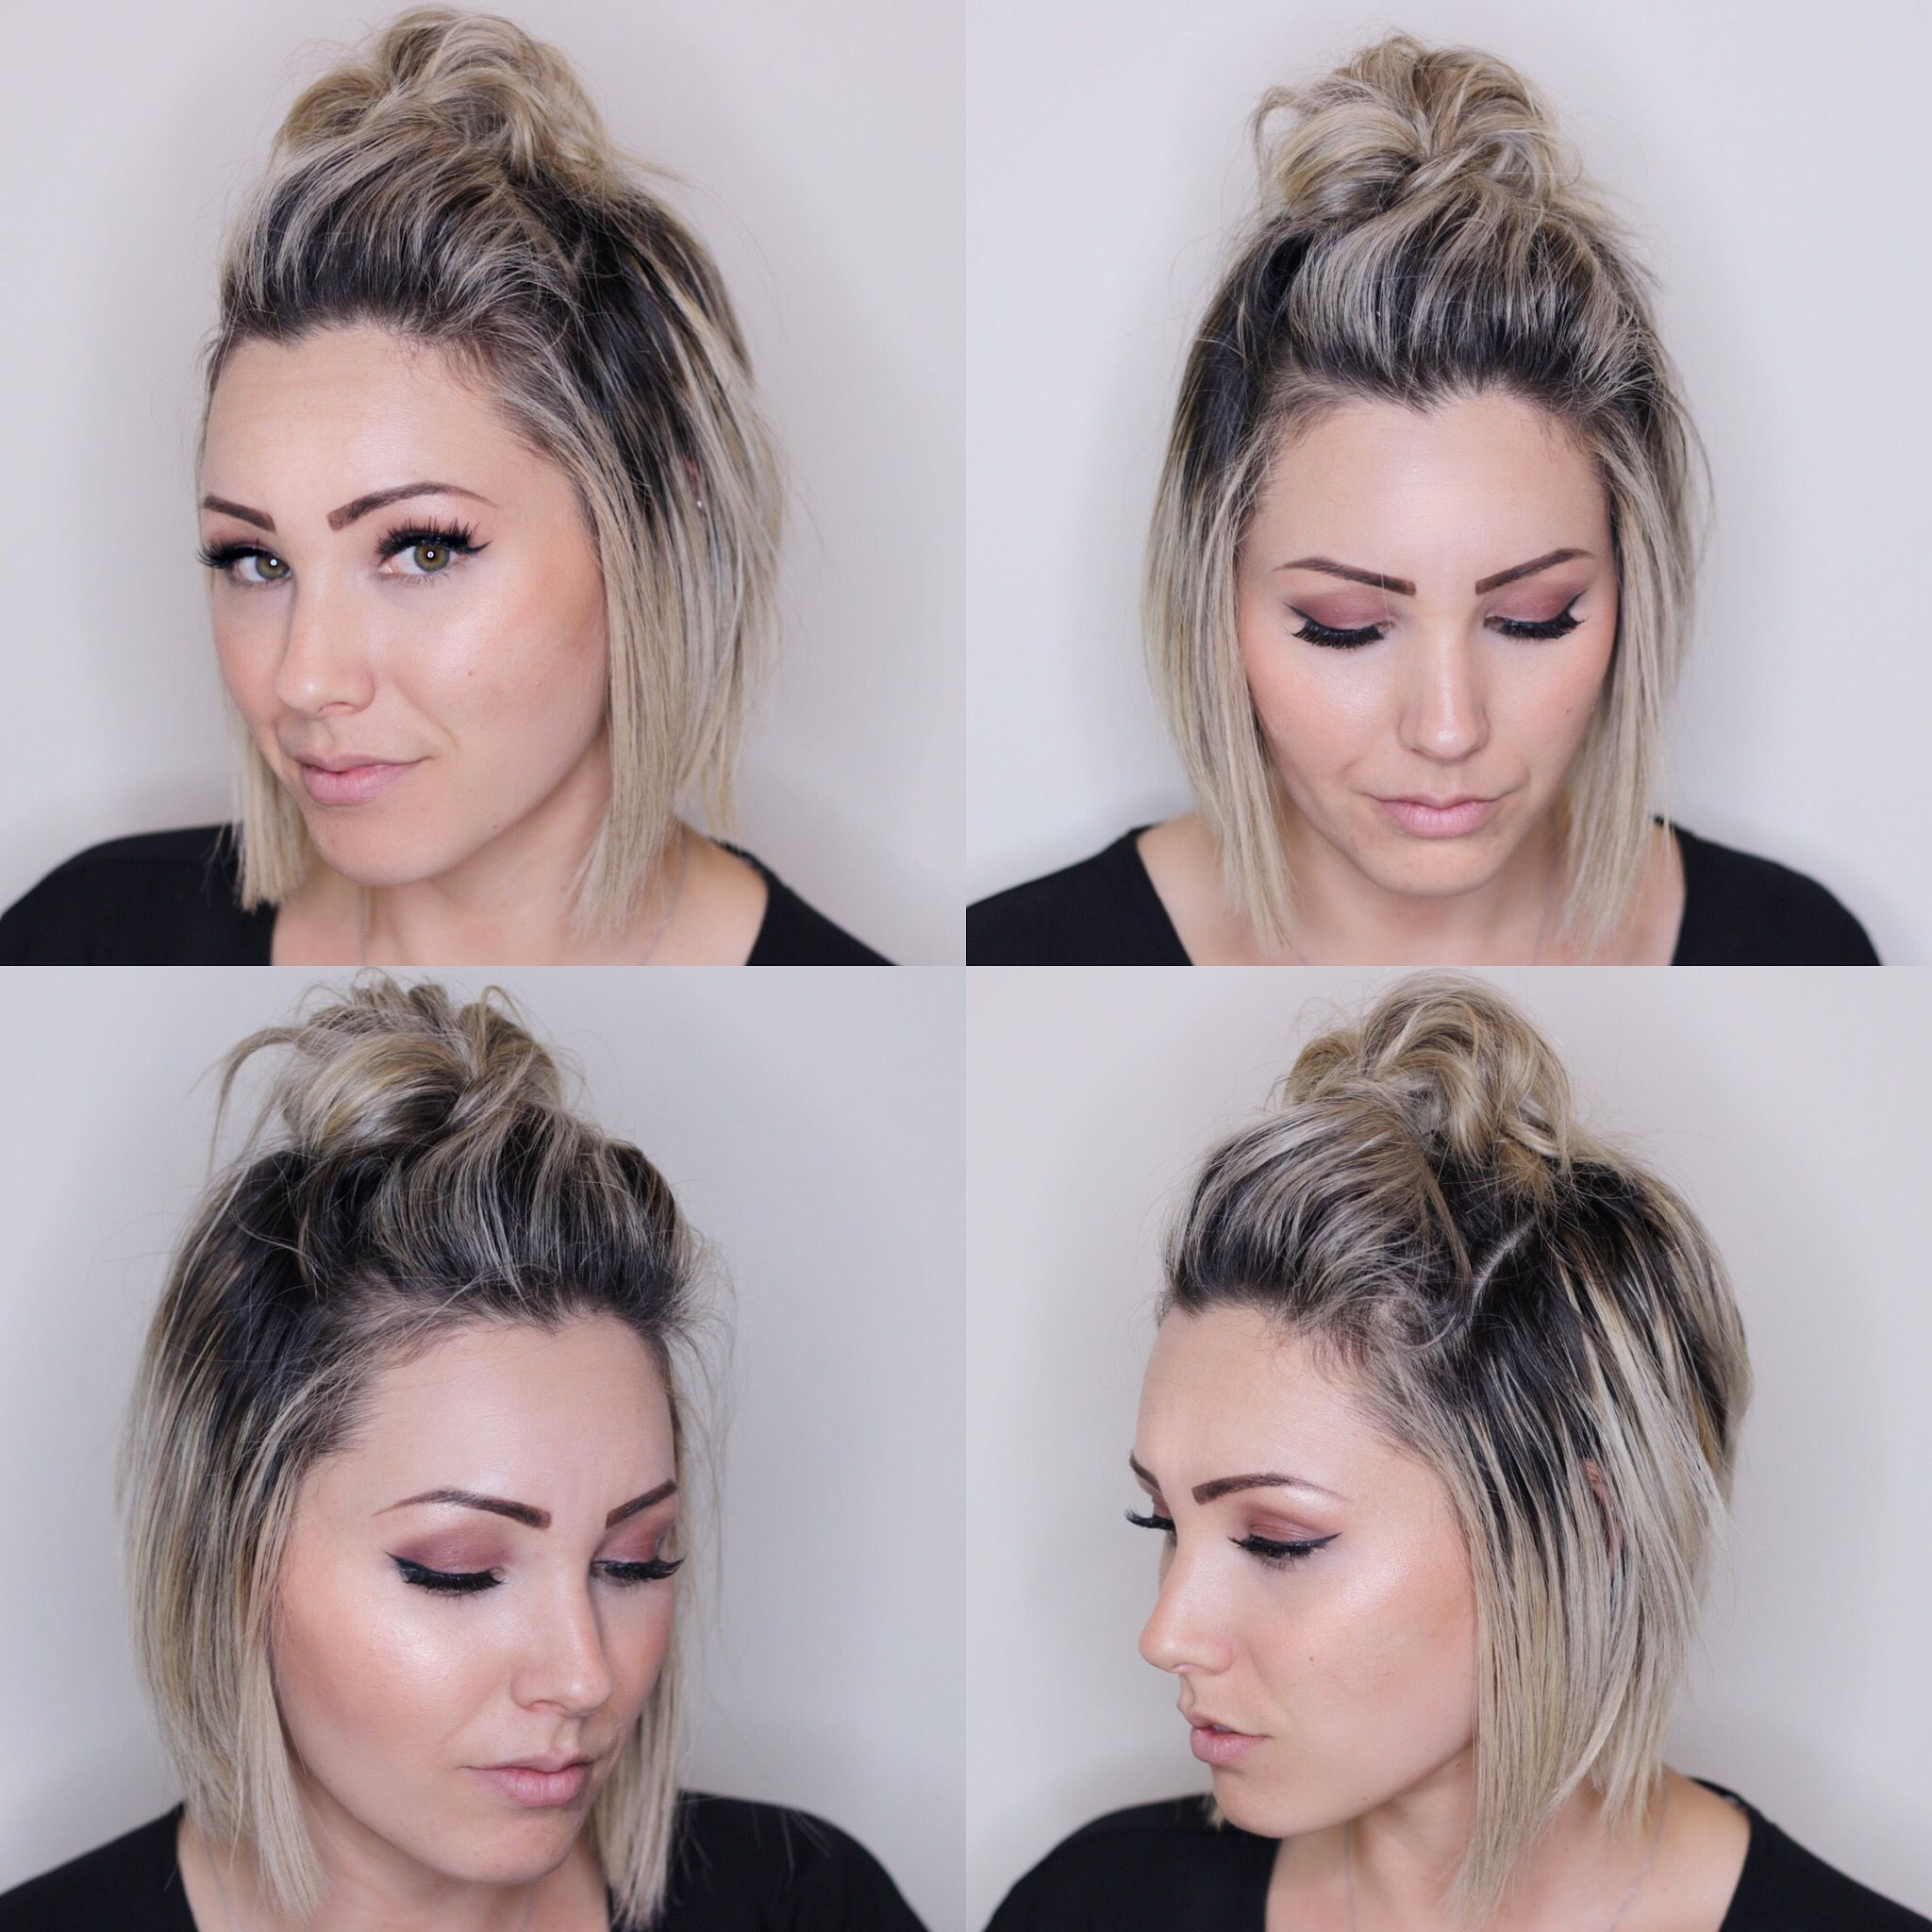 Hairstyle For Short Hair Awesome Top Knot For Short Hairshort Hairstylesoft Bob Haircut  H A I R